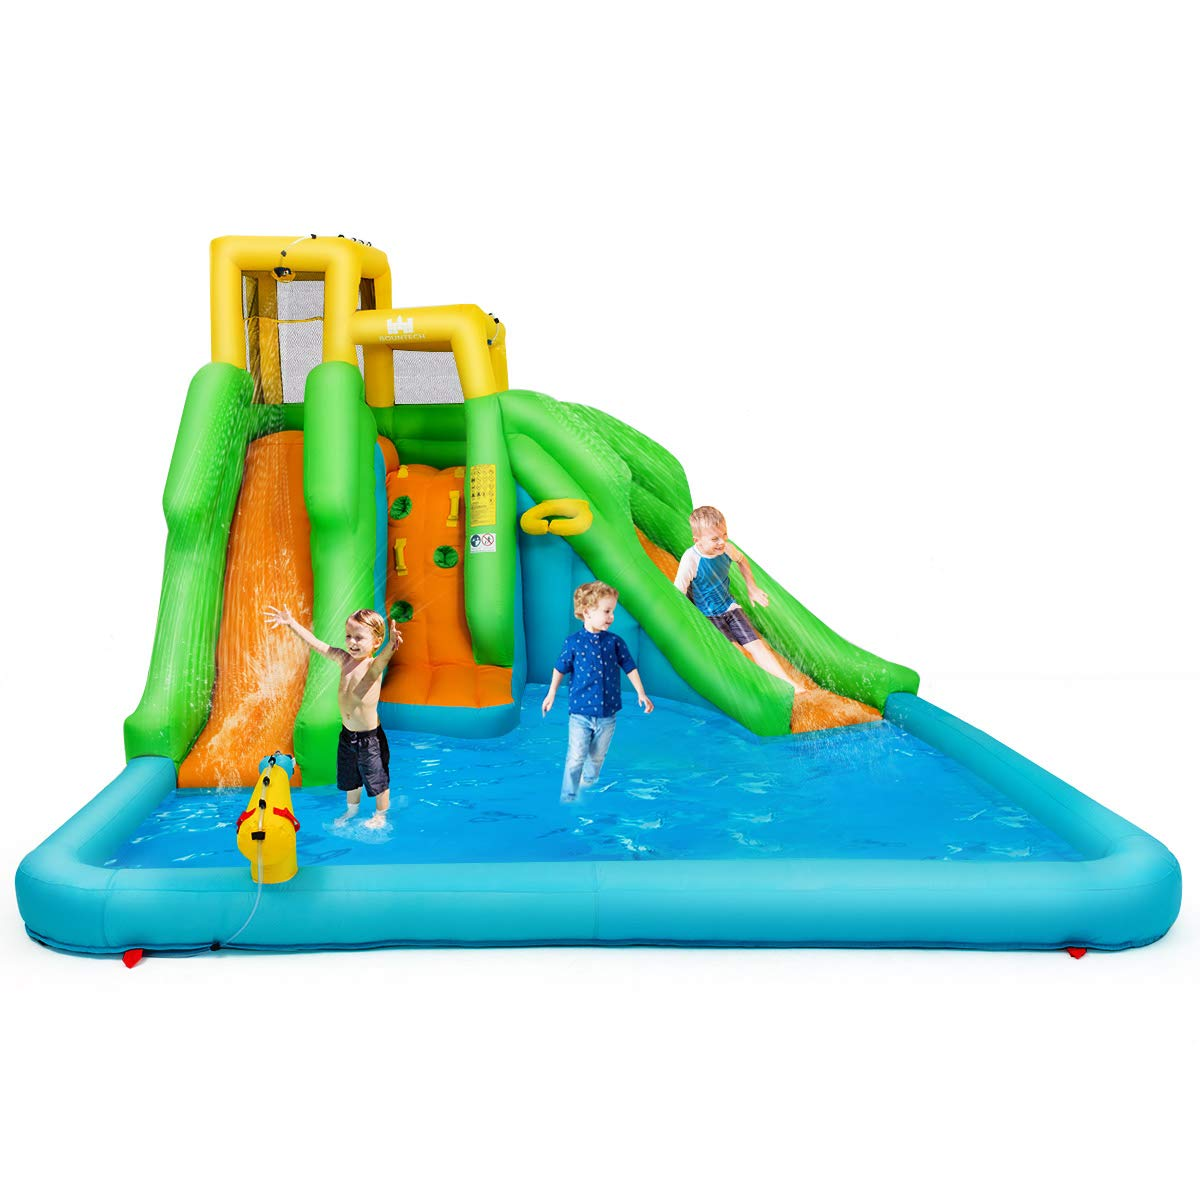 BOUNTECH Inflatable Bounce House, Mighty Water Pool with Two Slides, Climbing Wall, Basketball Rim, Splash Pool, Water Cannon, Including Oxford Carry Bag, Repairing Kit, Stakes, Hose (Without Blower)